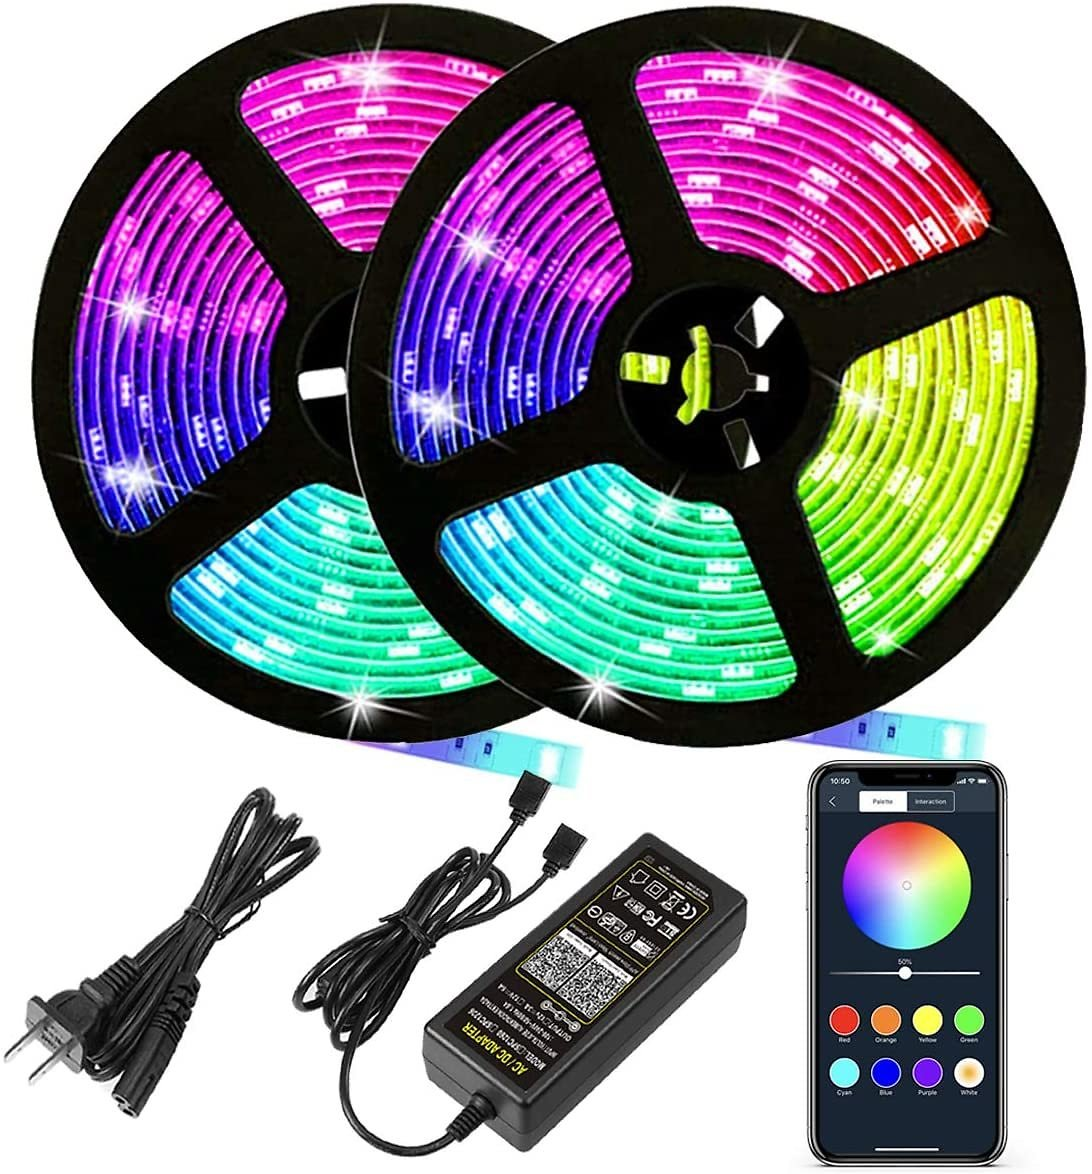 Autai LED Strip Lights 32.8Ft(10m) 600leds,Waterproof RGB Color Changing Rope Lights with Smart Bluetooth Light Strip Sync to Mu